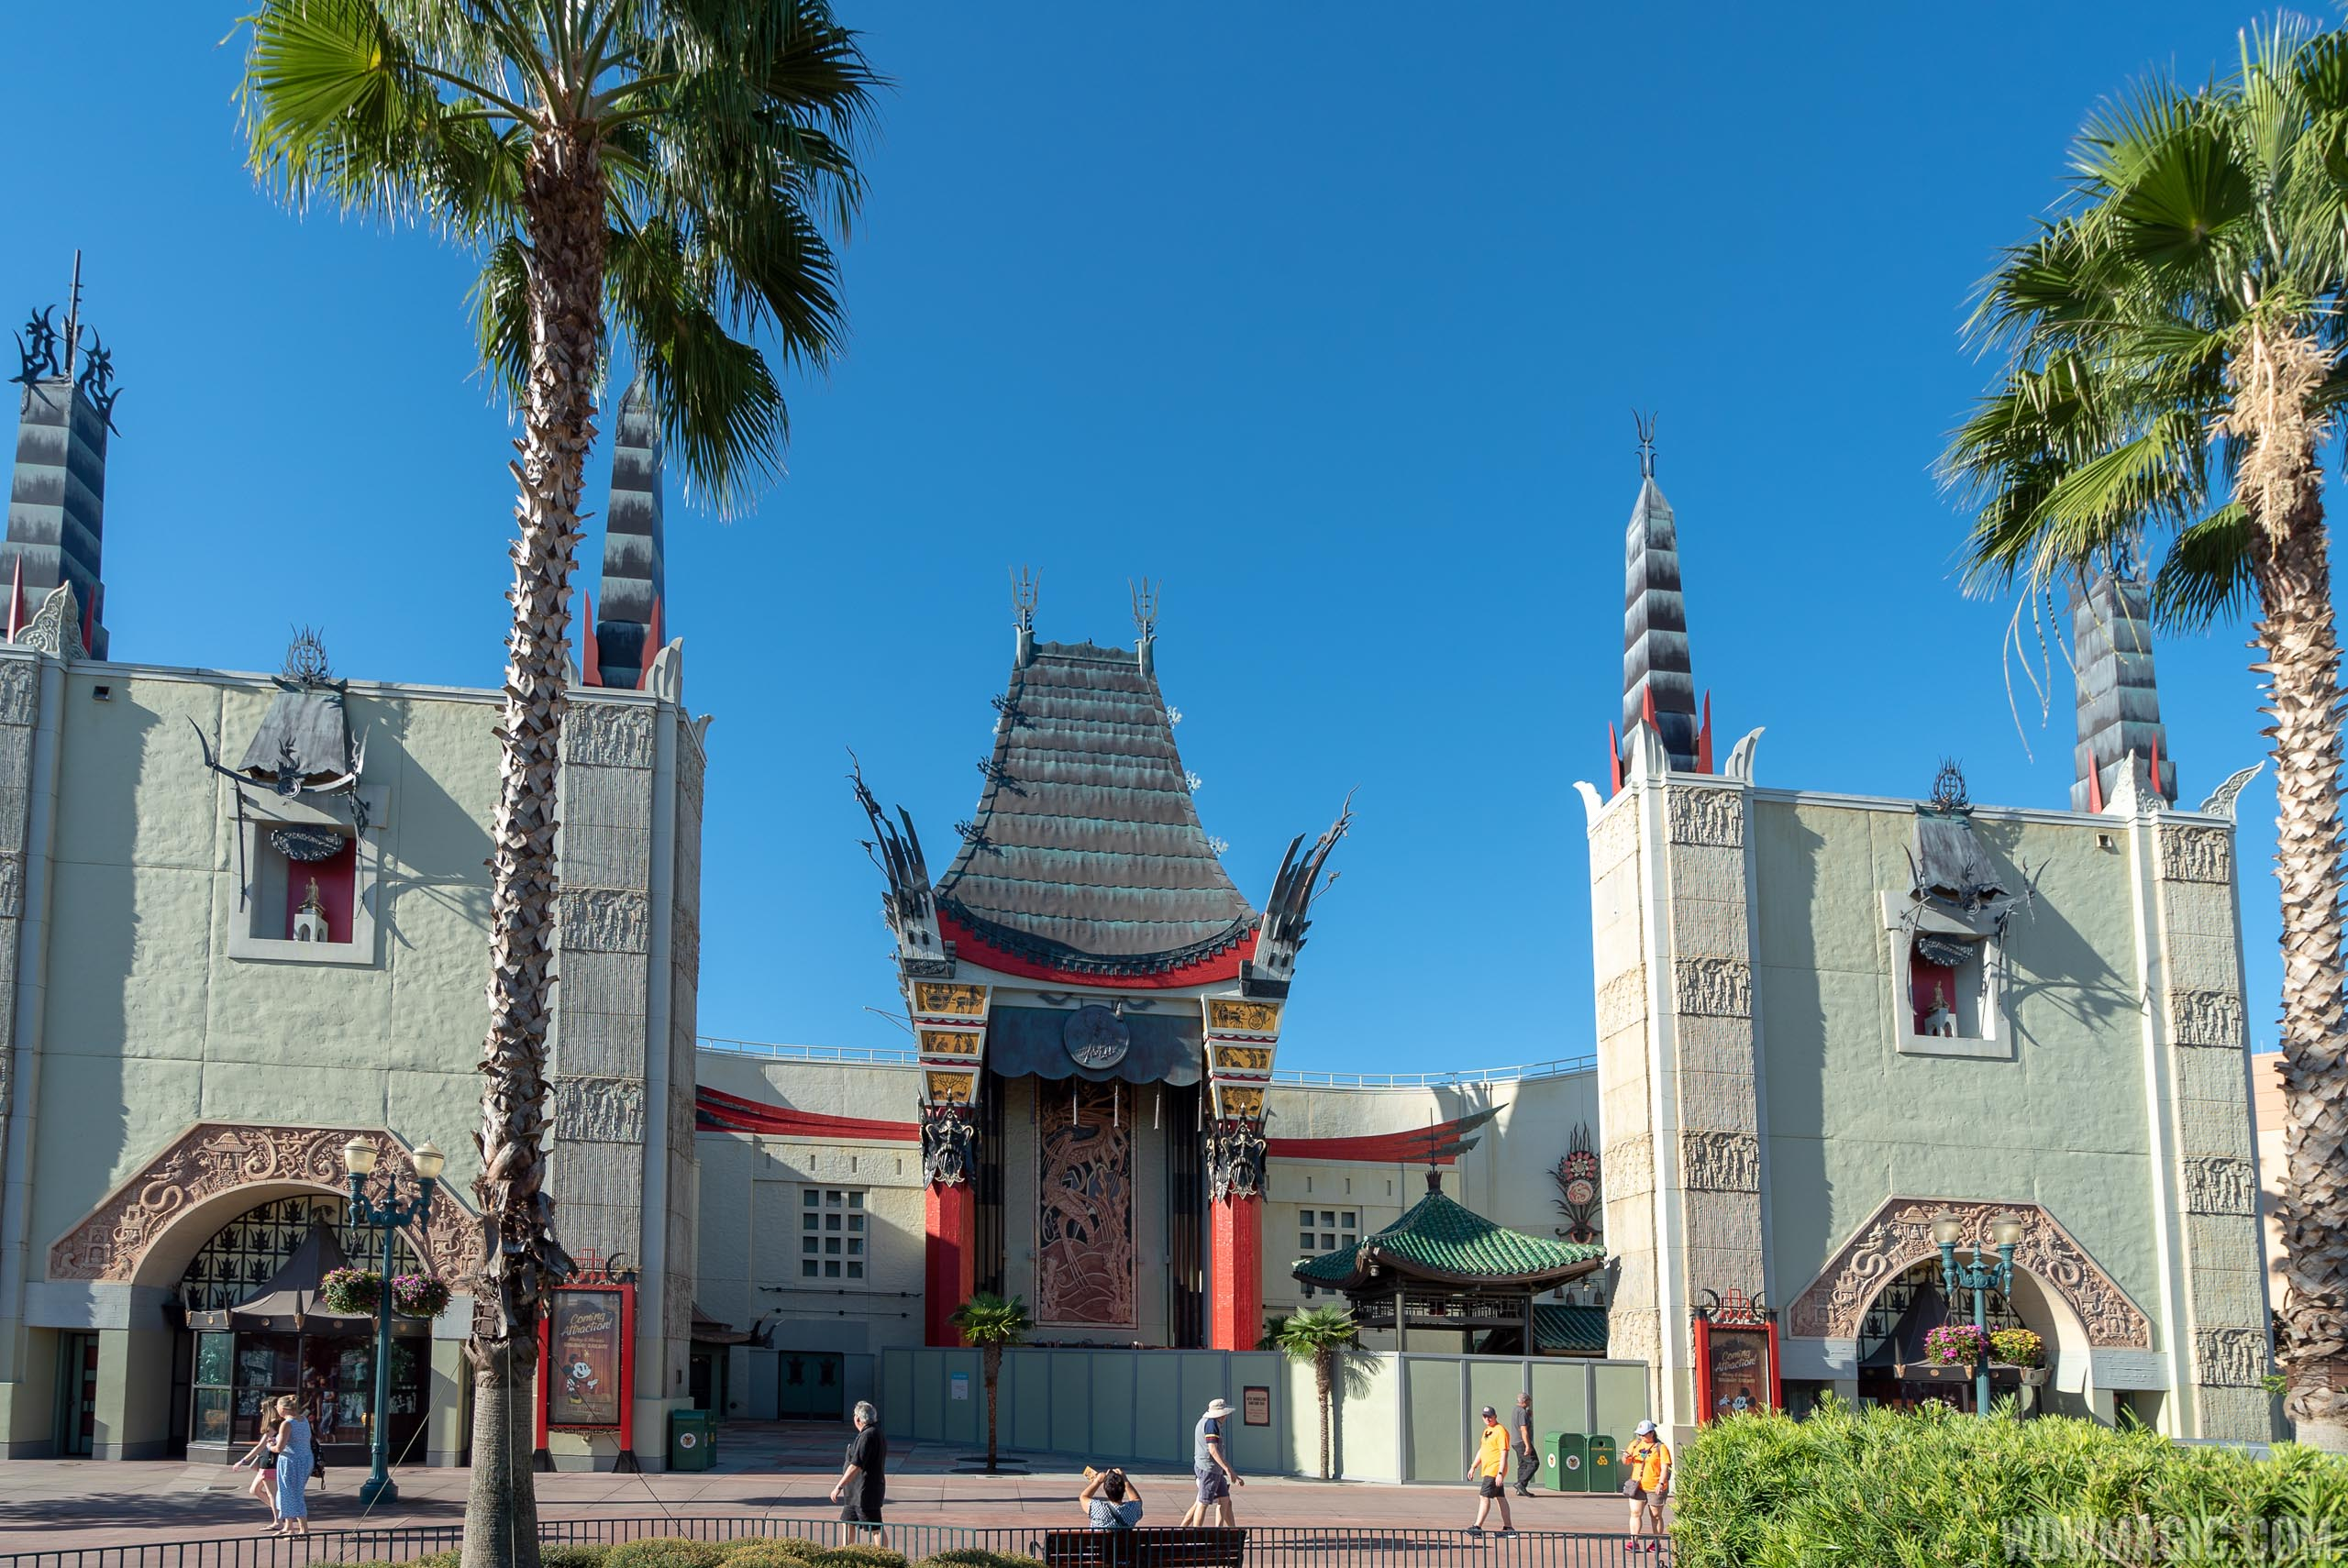 Chinese Theater exterior preparation for Mickey and Minnie's Runaway Railway